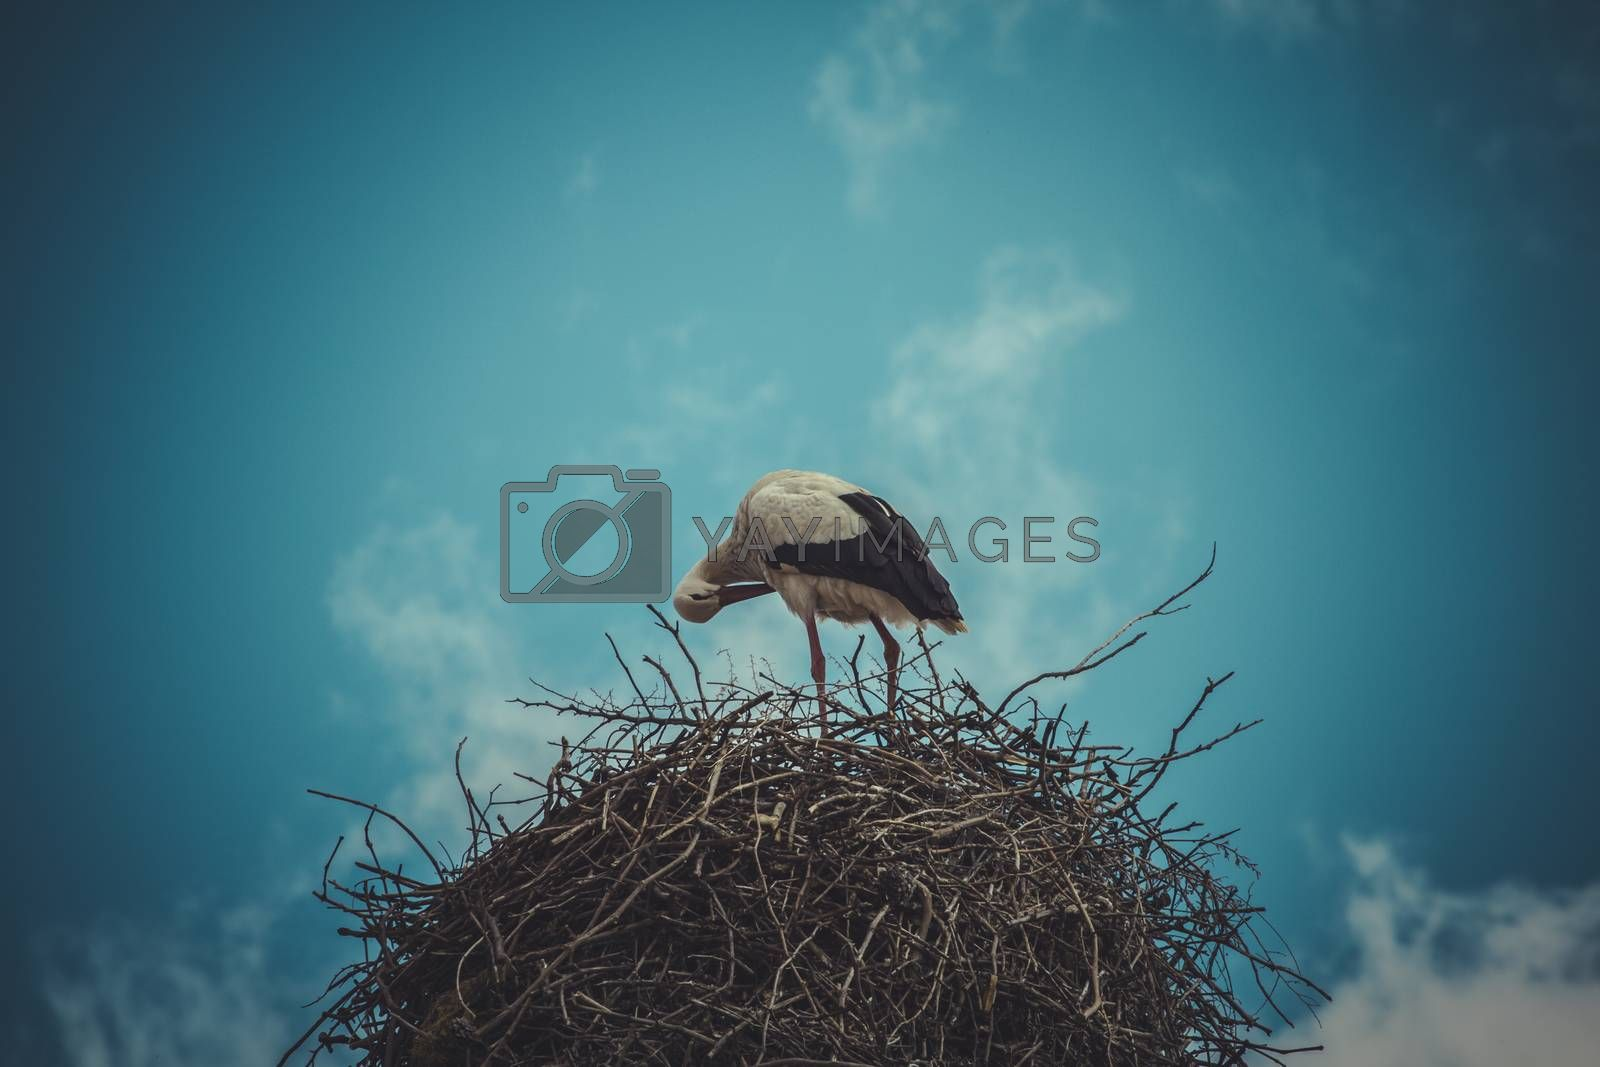 Wild, Stork nest made ������of tree branches over blue sky in dramatic